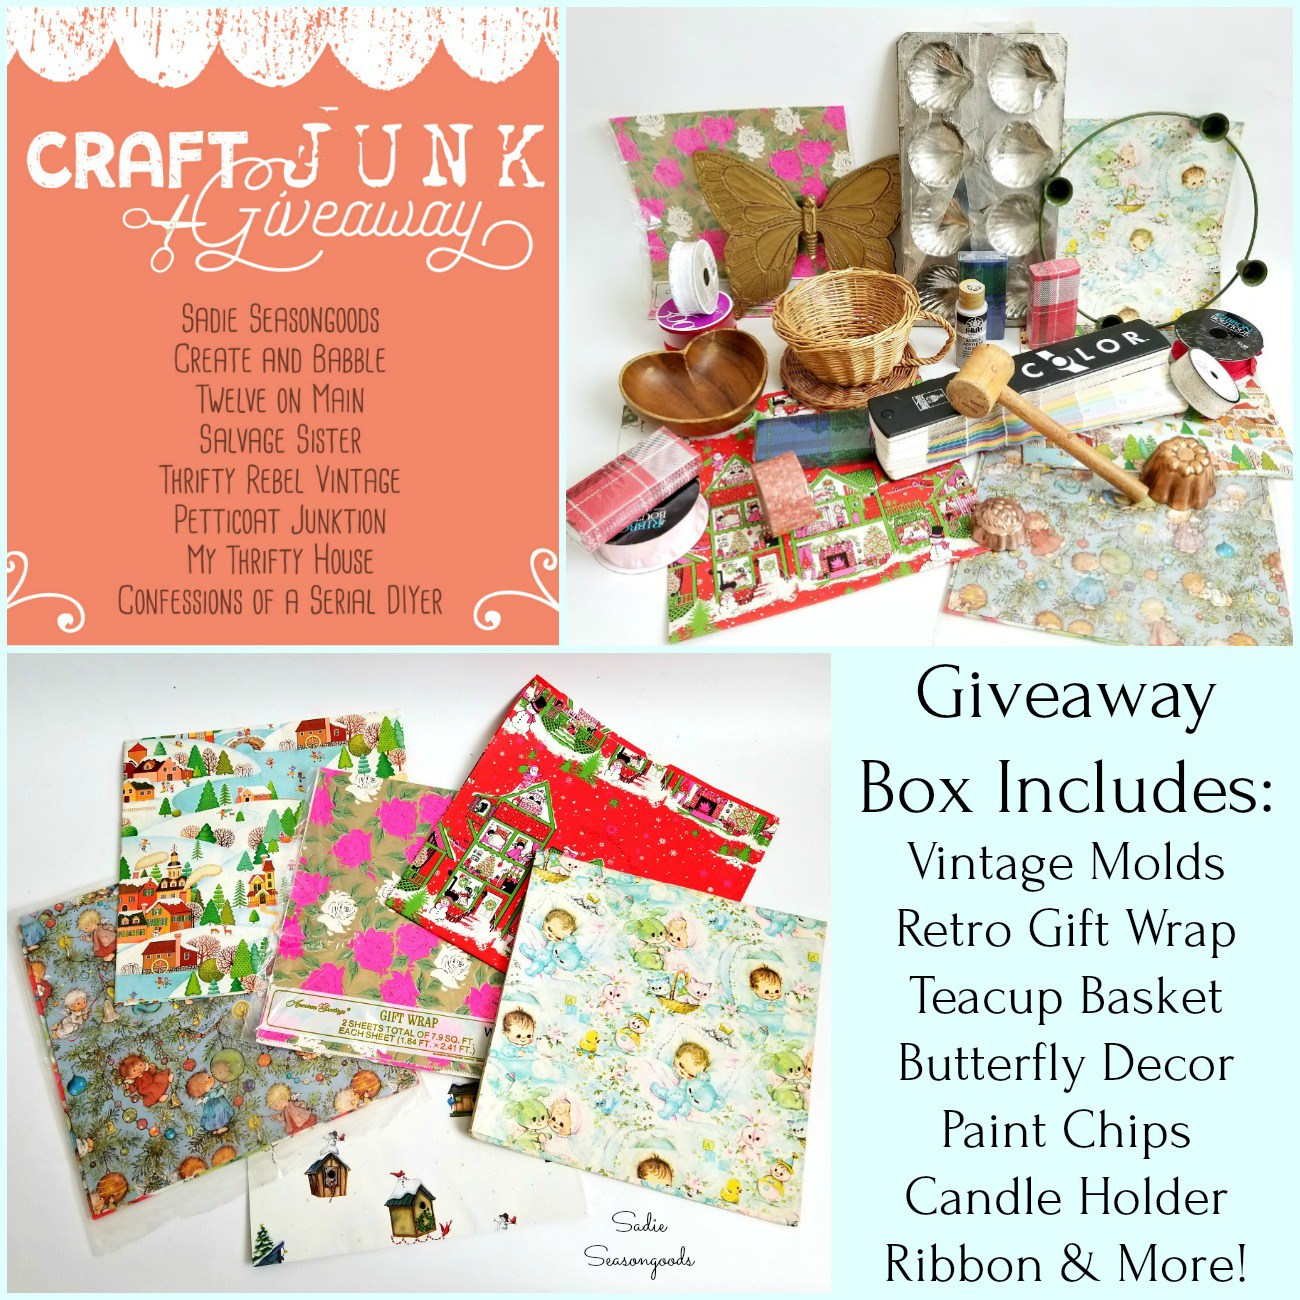 Craft_Junk_Giveaway_April_2018_from_Sadie_Seasongoods